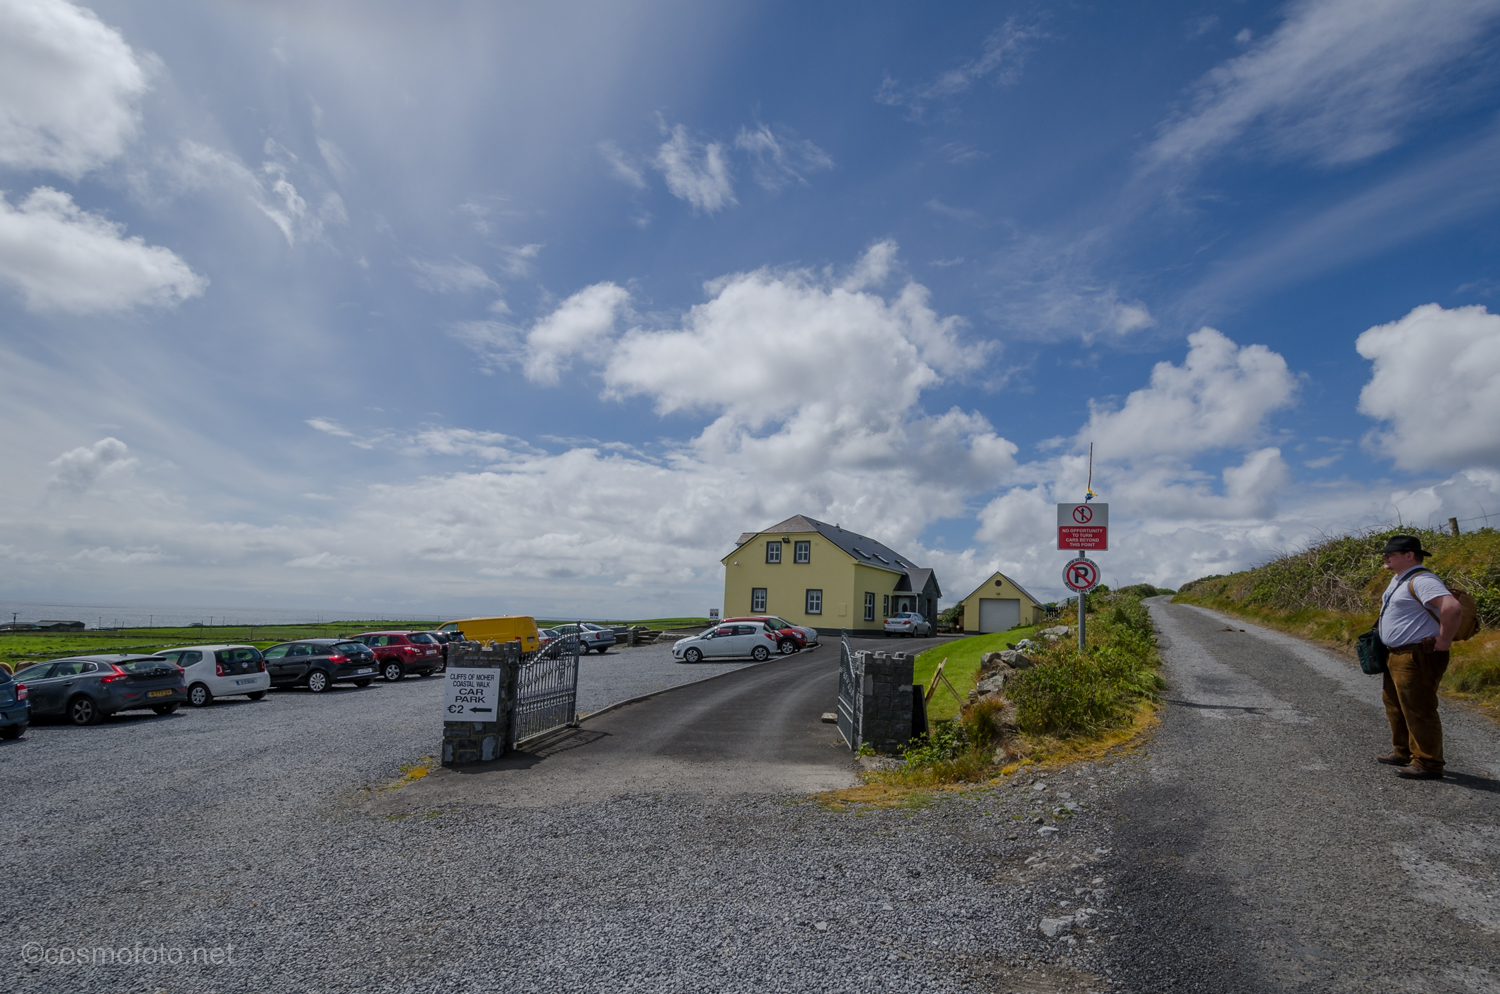 Pat Nagle's car park, about 0.5km from the trail head